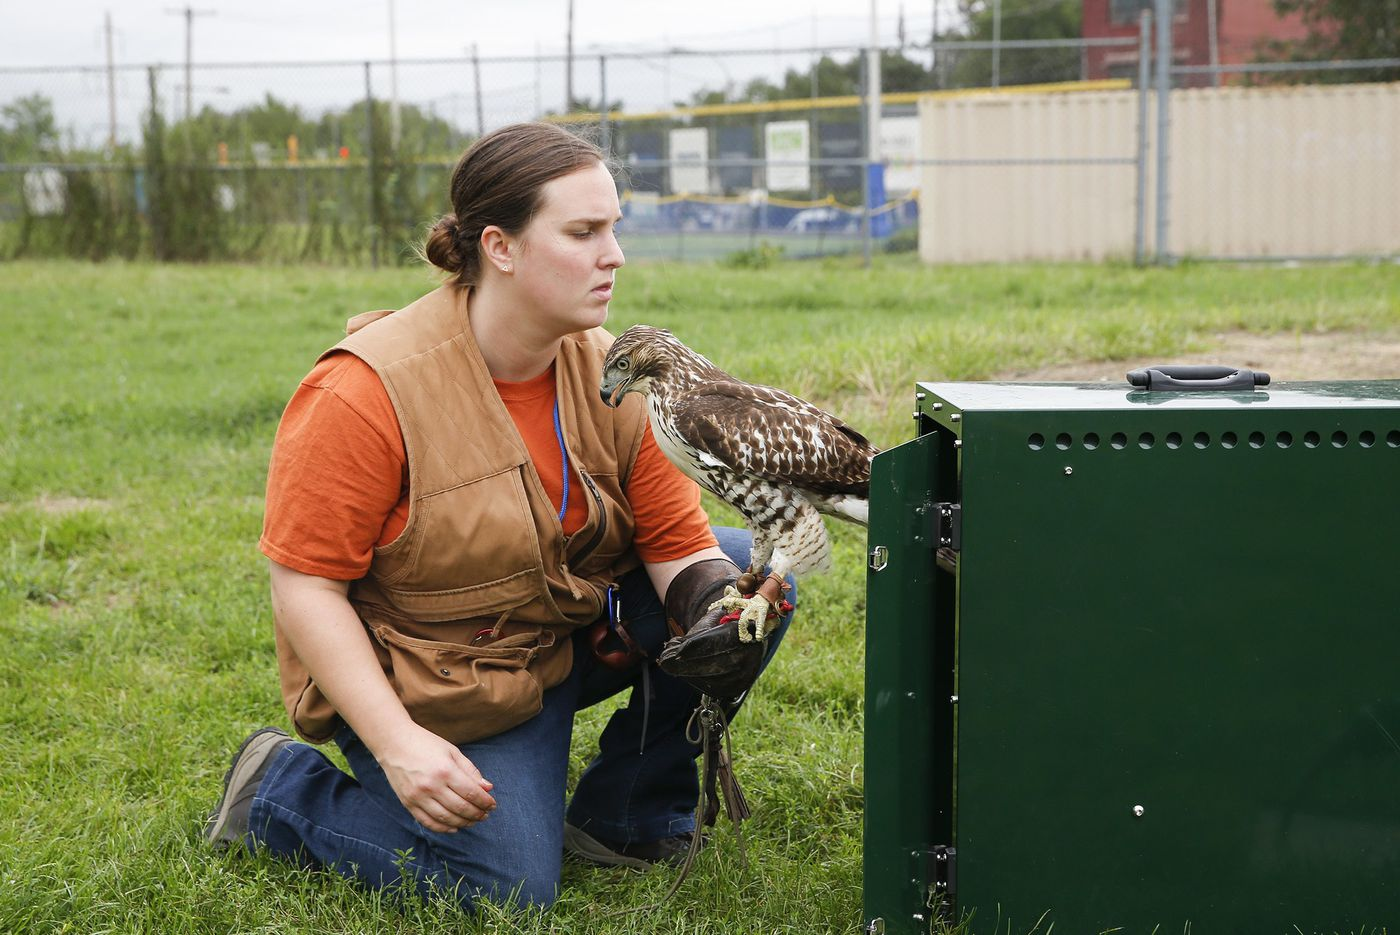 Buying frozen rats in bulk and Netflix with a hawk: The life of a falconer in Philly